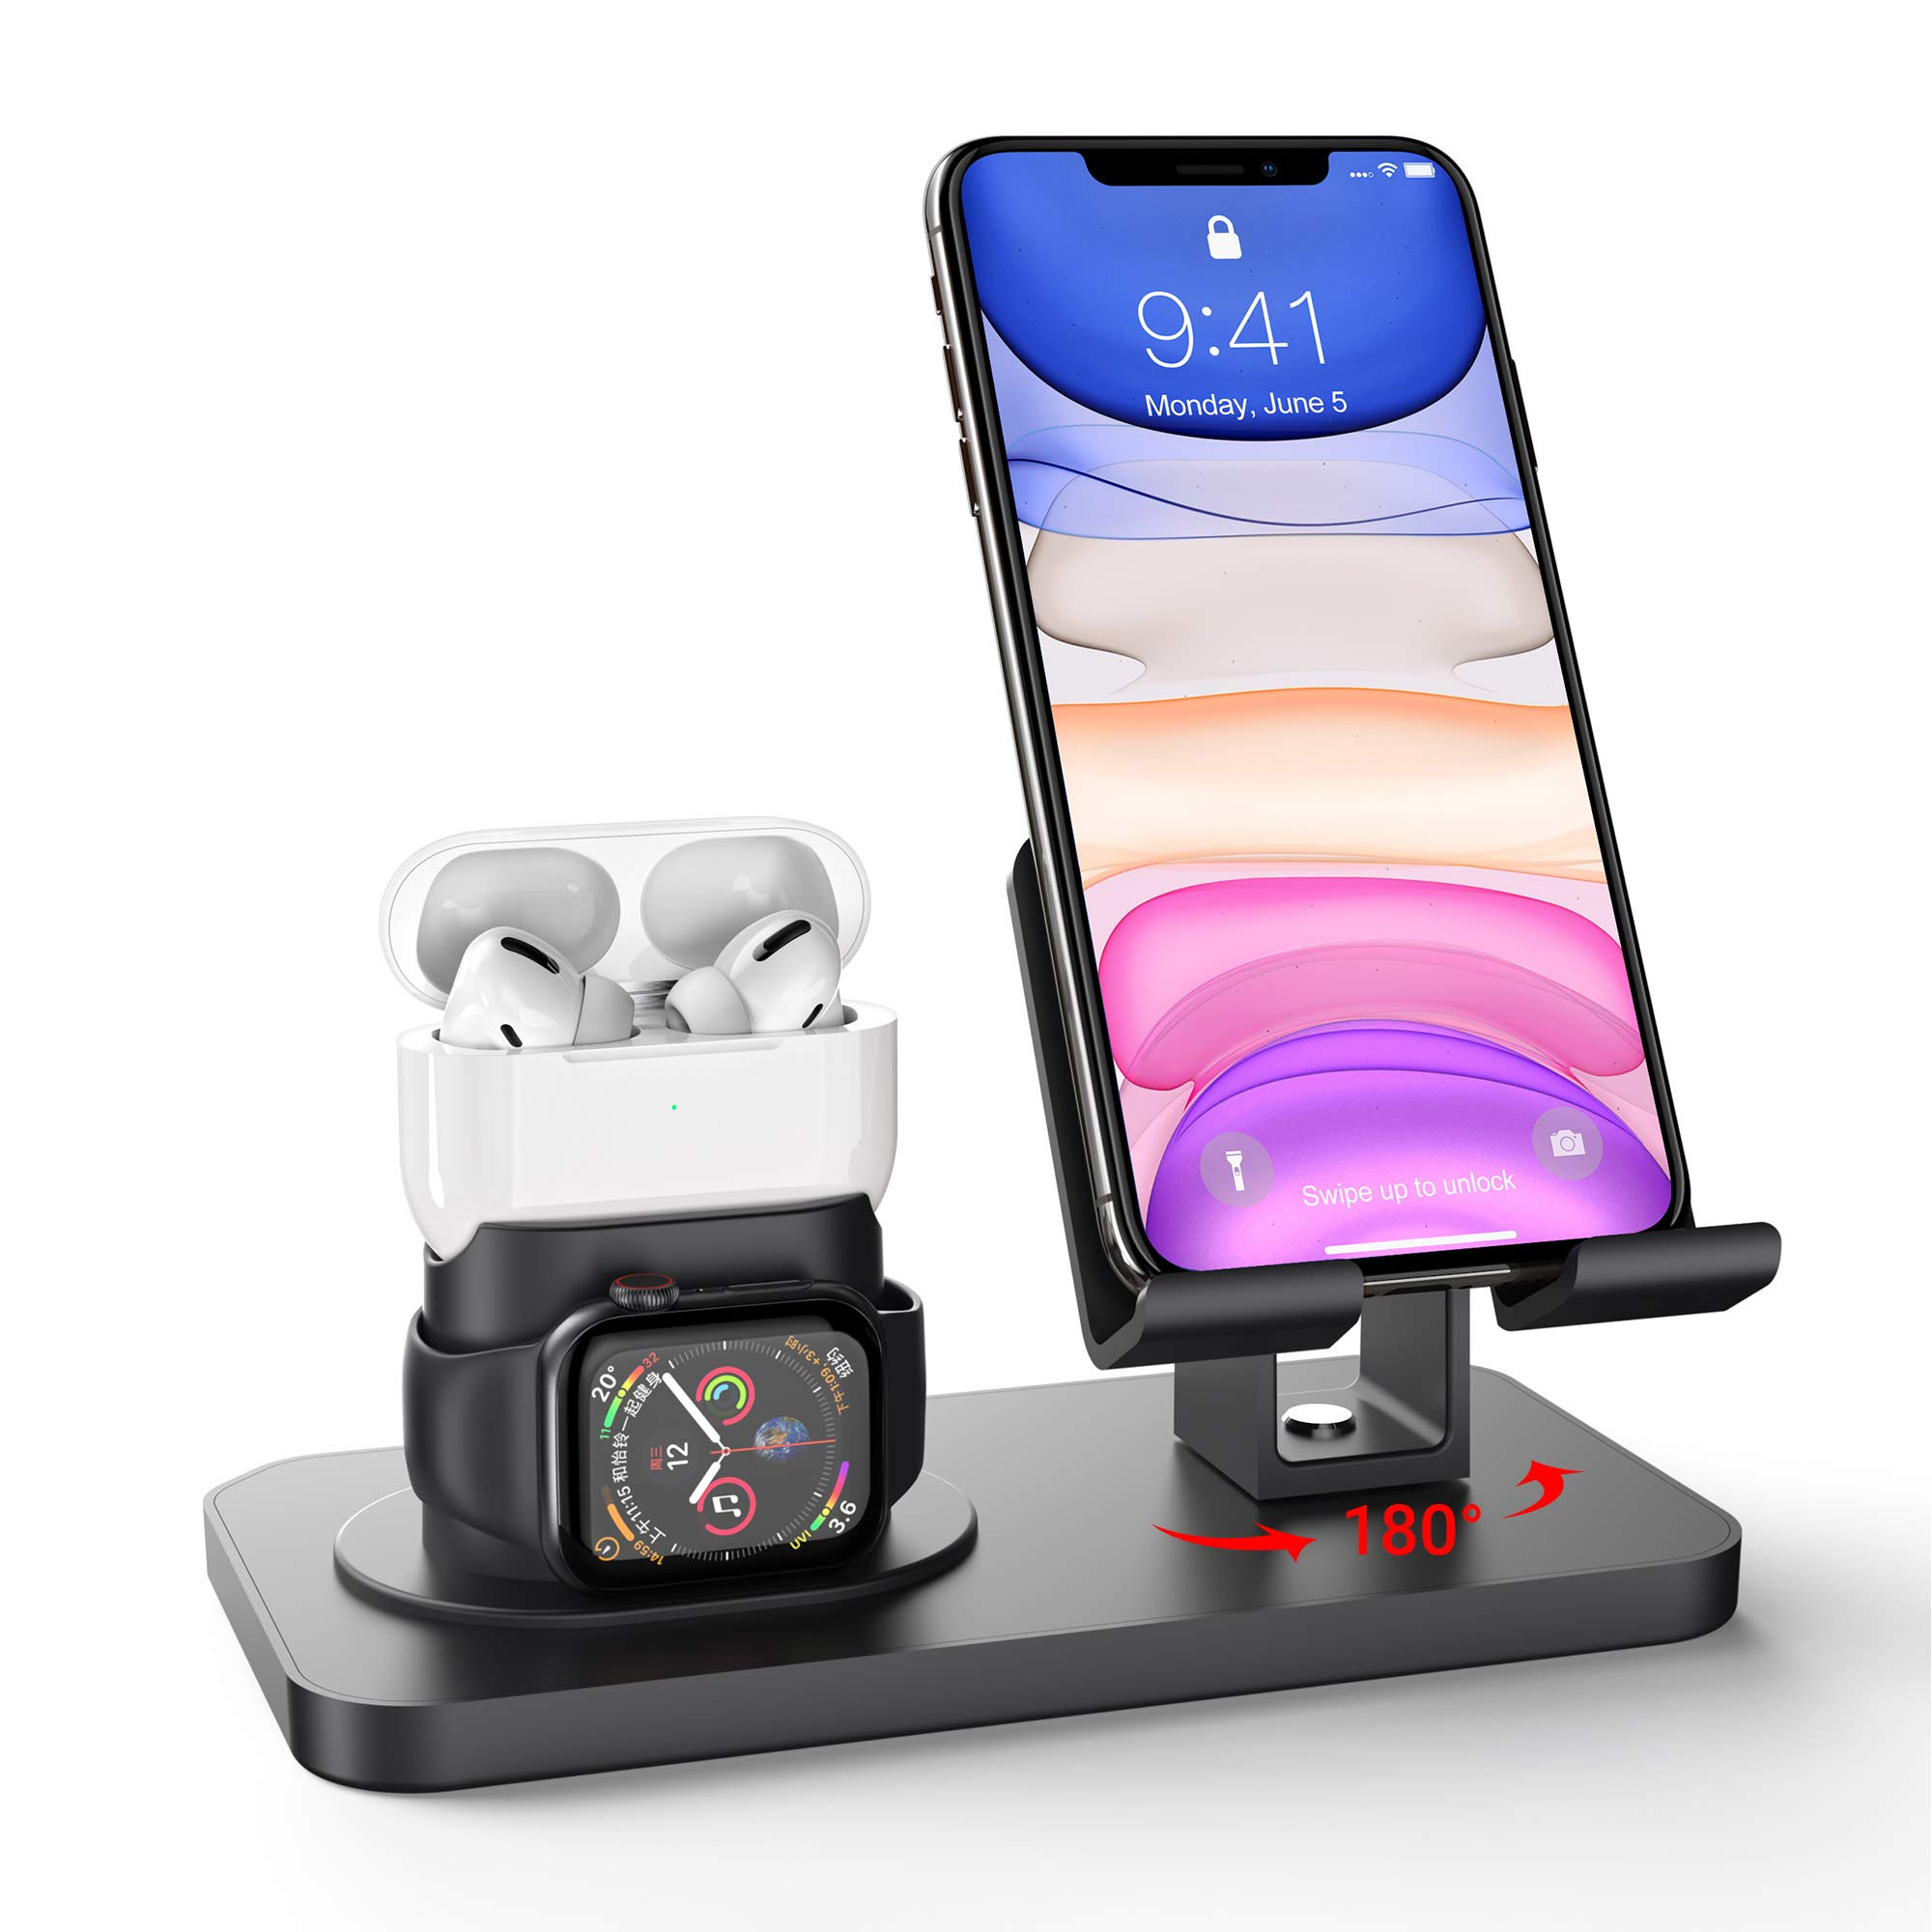 Imguardz 3 in 1 Charging Stand Compatible with iWatch Series 5/4/3/2/1, AirPods Pro 2/1 and iPhone 11/XR/X/Xs/Max/8/8 Plus/7/7 Plus/6s/6s Plus/5/SE (Charger & Cables Required), Black